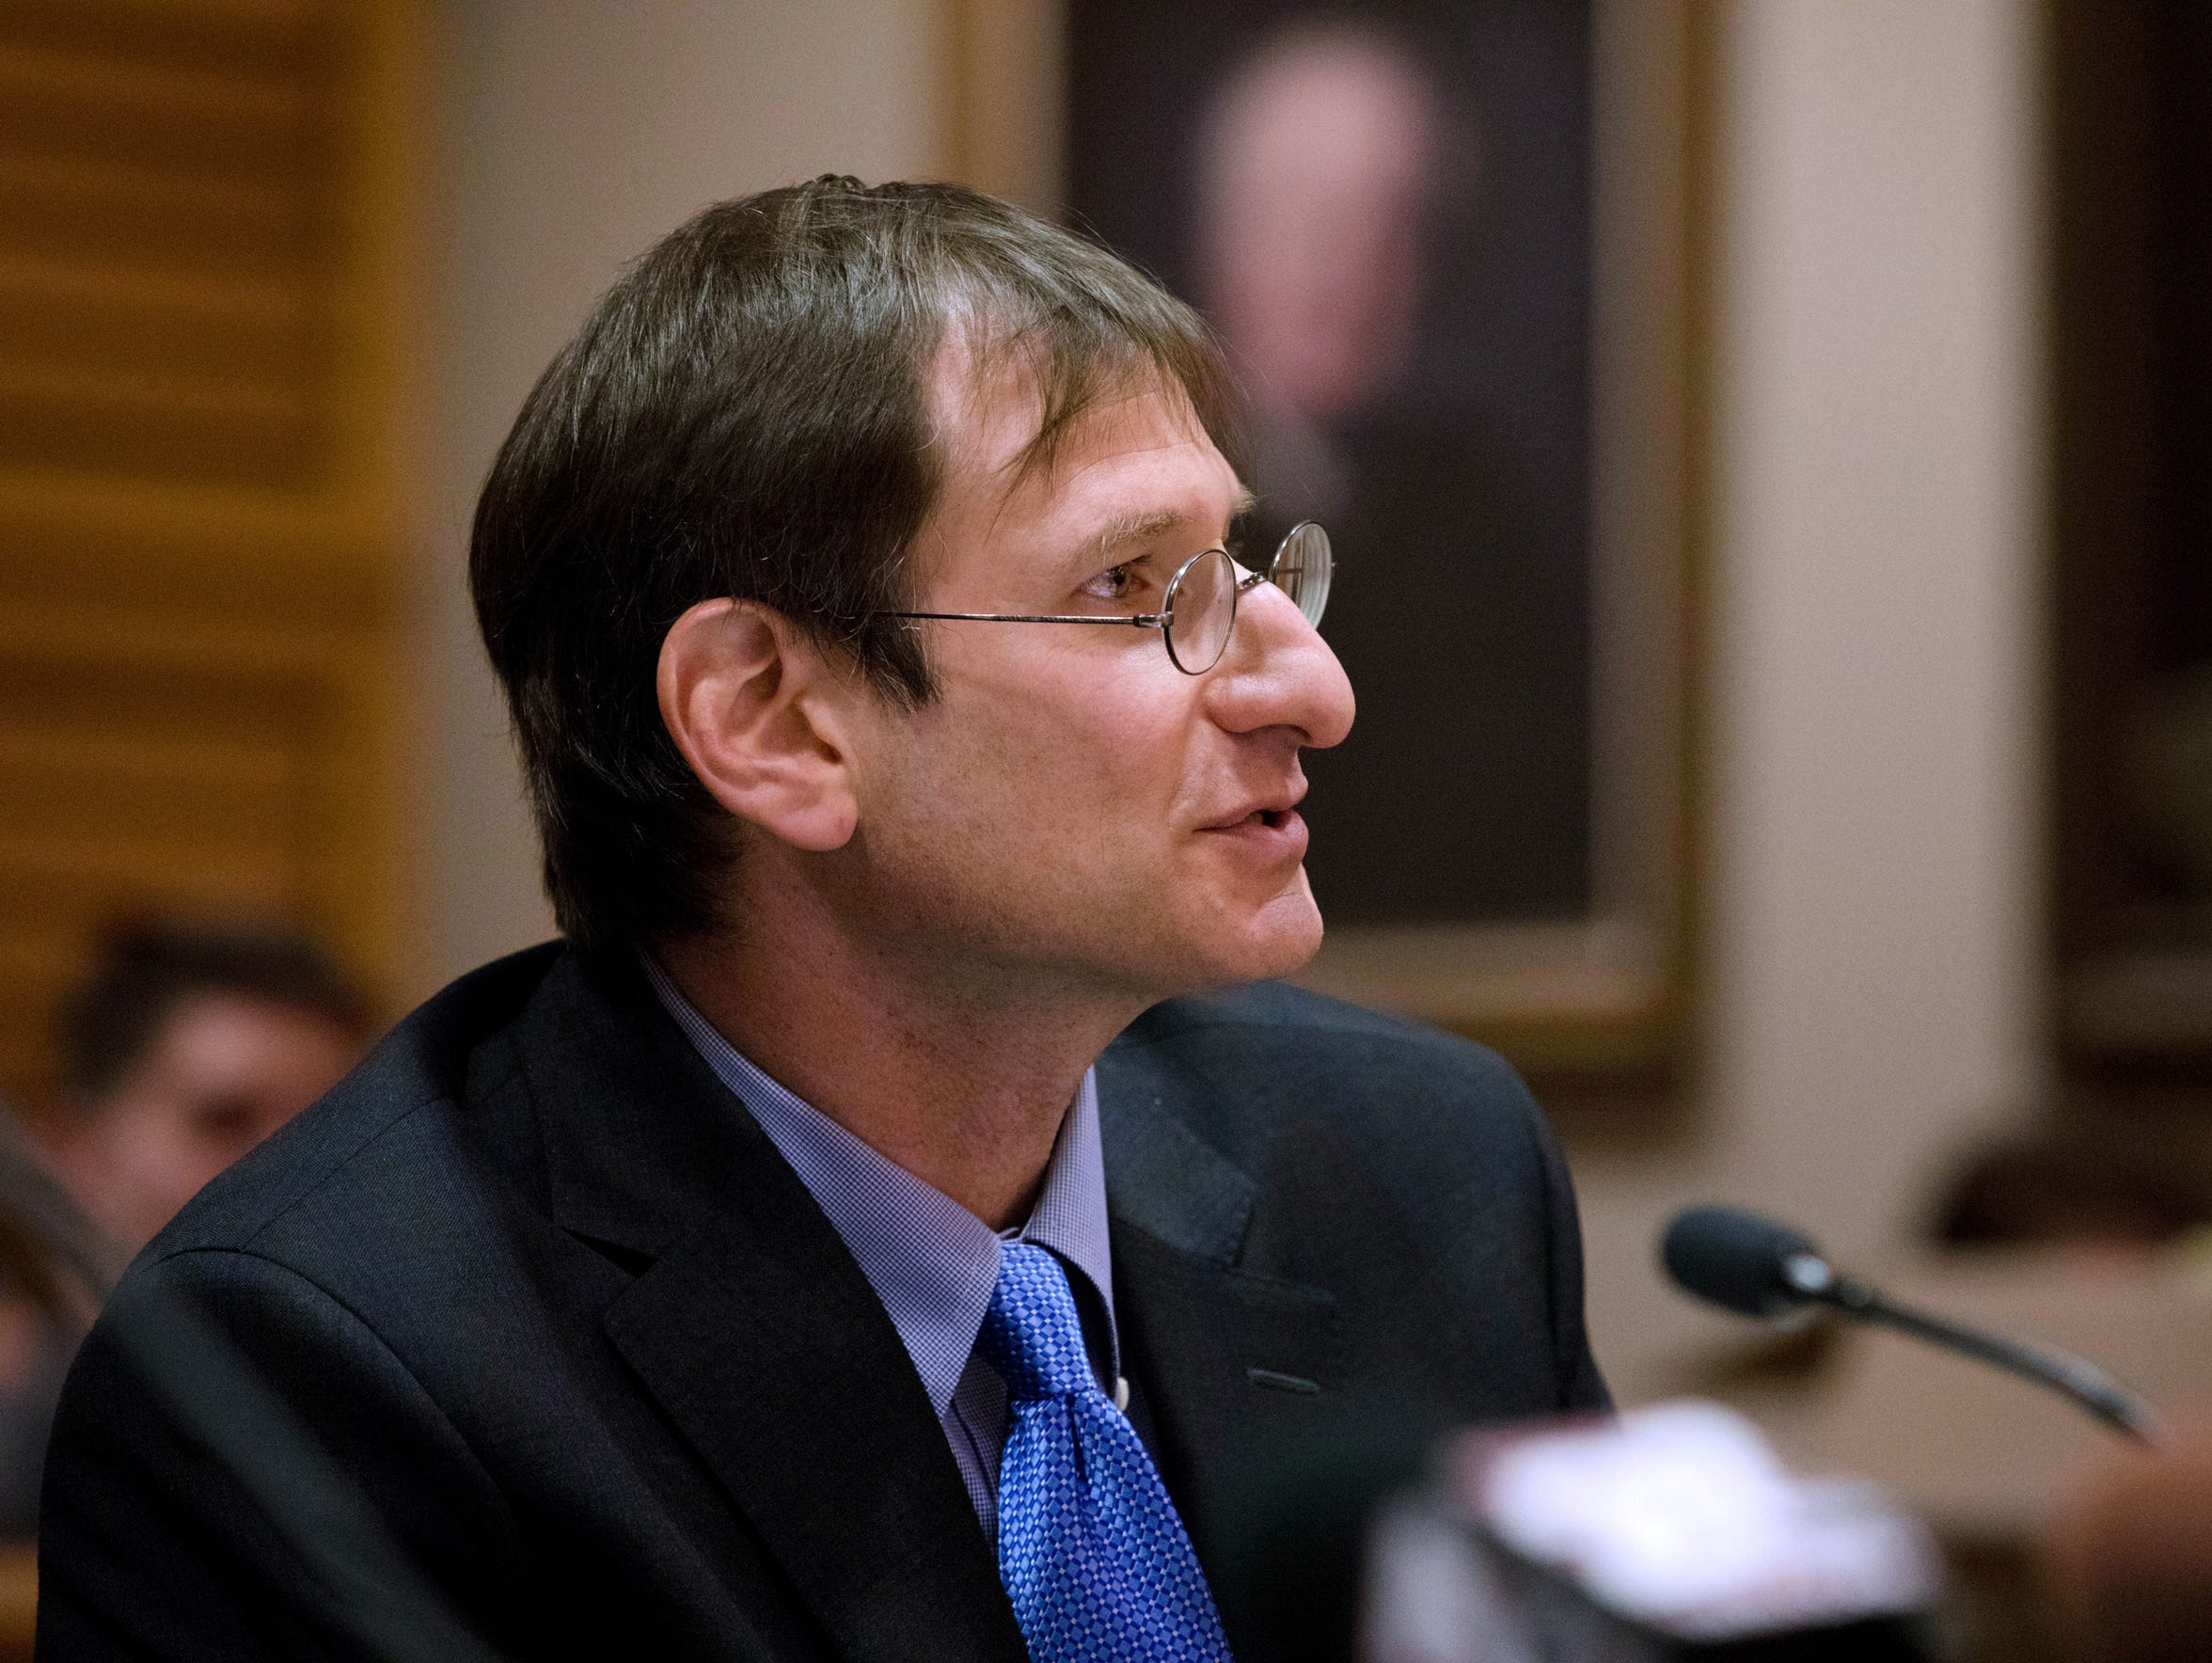 Innocence Project attorney Bryce Benjet argues on behalf